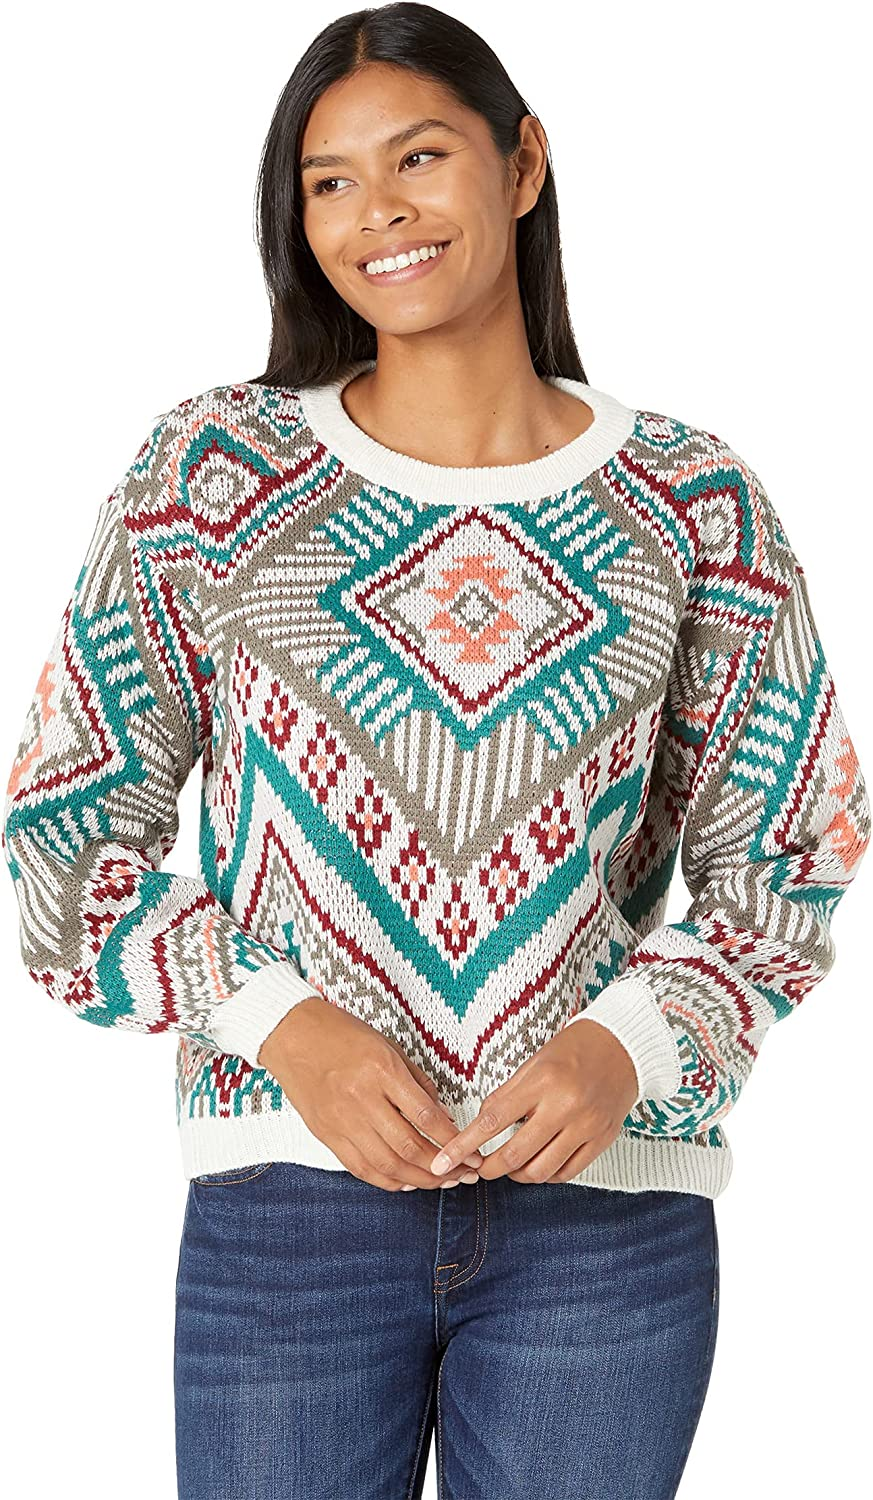 Rock and Roll Cowgirl Long Sleeve Sweater 46-1169